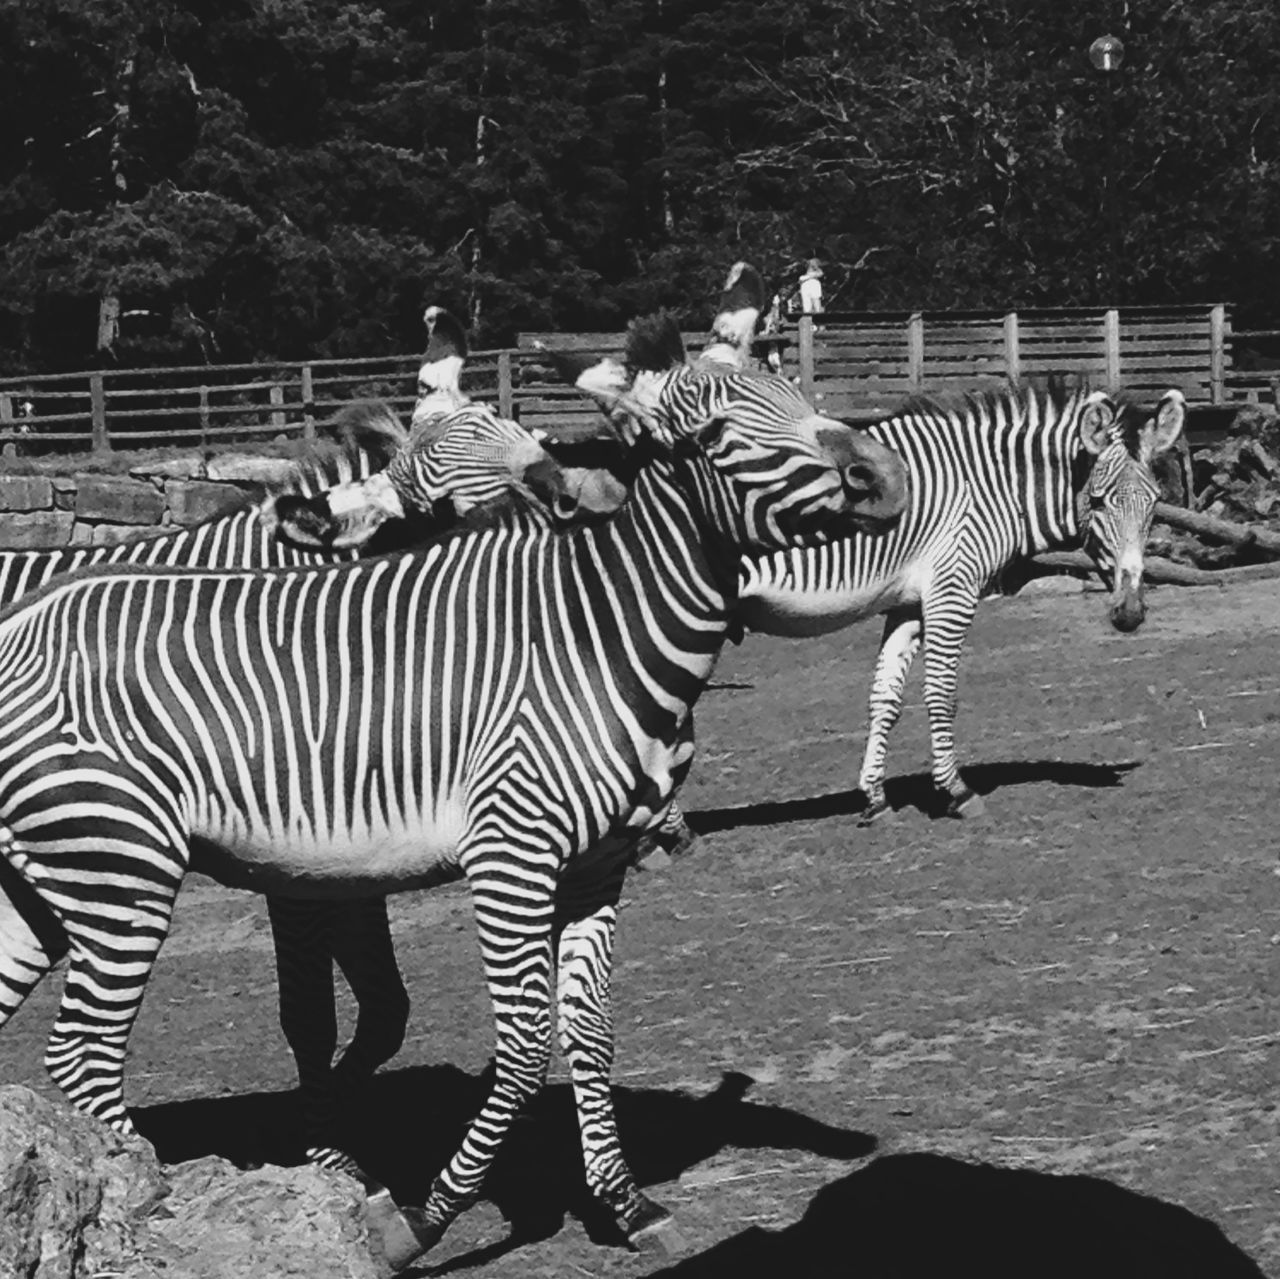 Zebra Zebras Animals Blackandwhite